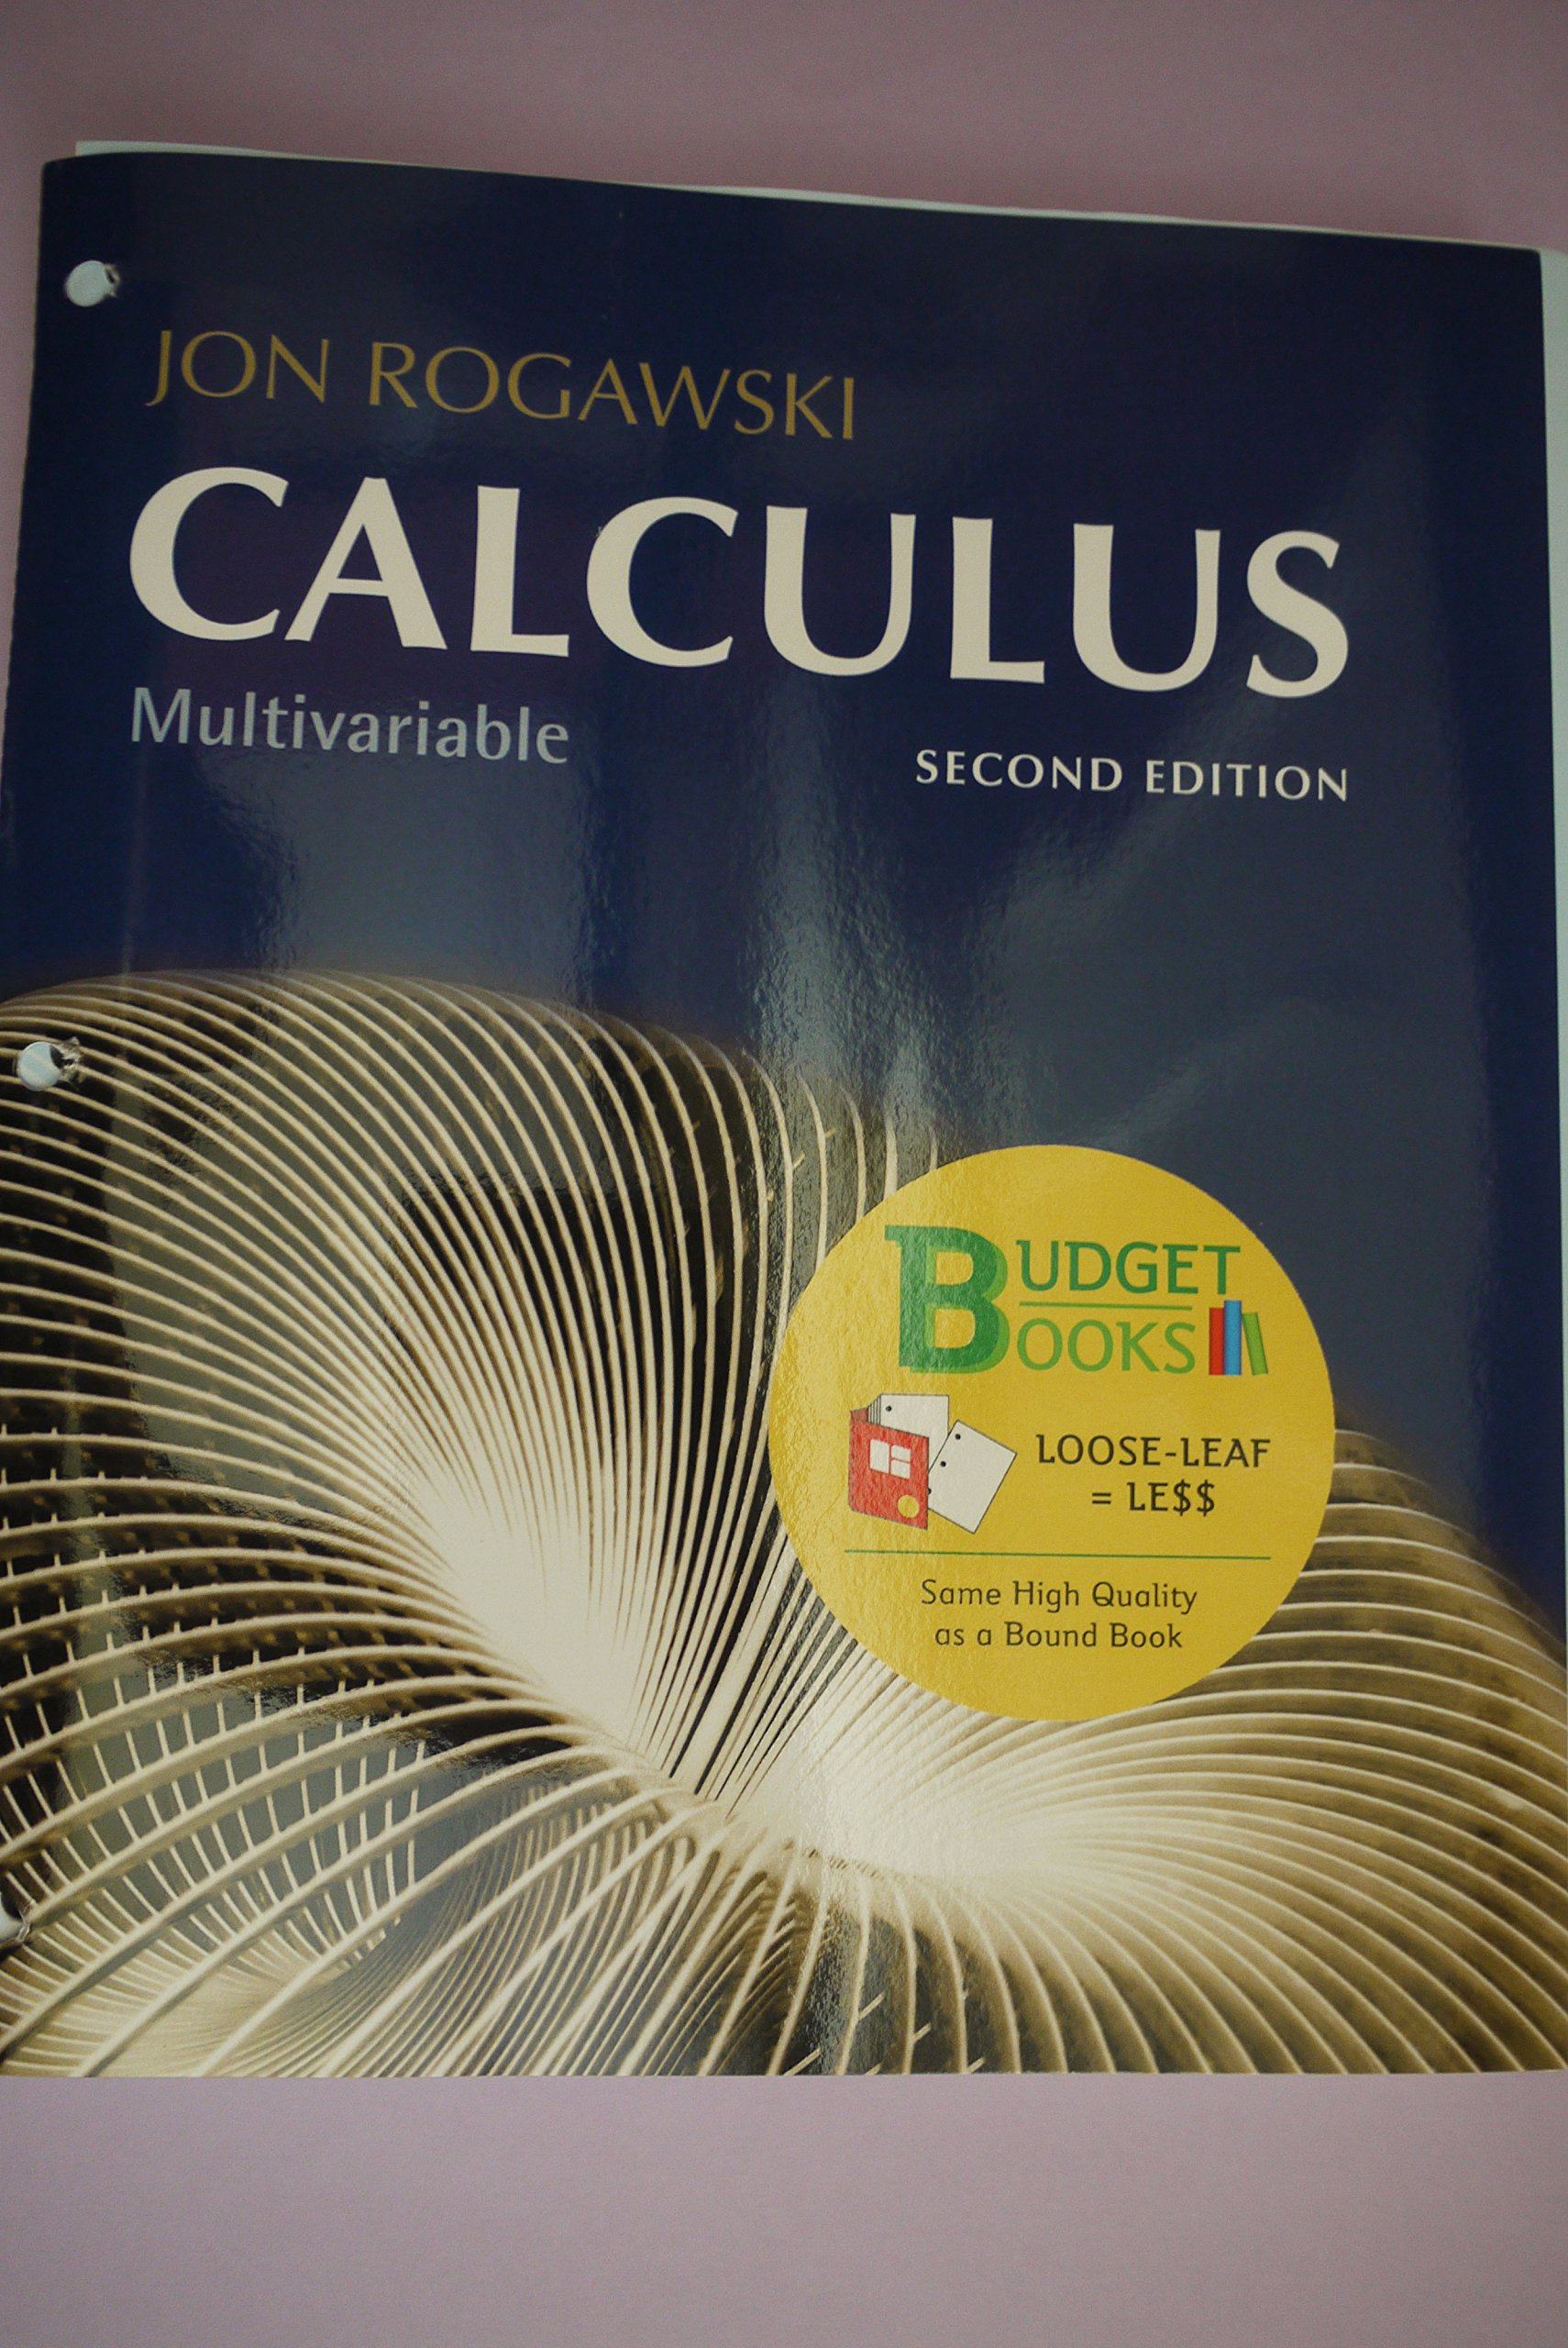 Jon rogawski calculus multivariable 2nd edition loose leaf loose jon rogawski calculus multivariable 2nd edition loose leaf loose leaf 2nd edition jon rogawski 9781464133824 amazon books fandeluxe Gallery